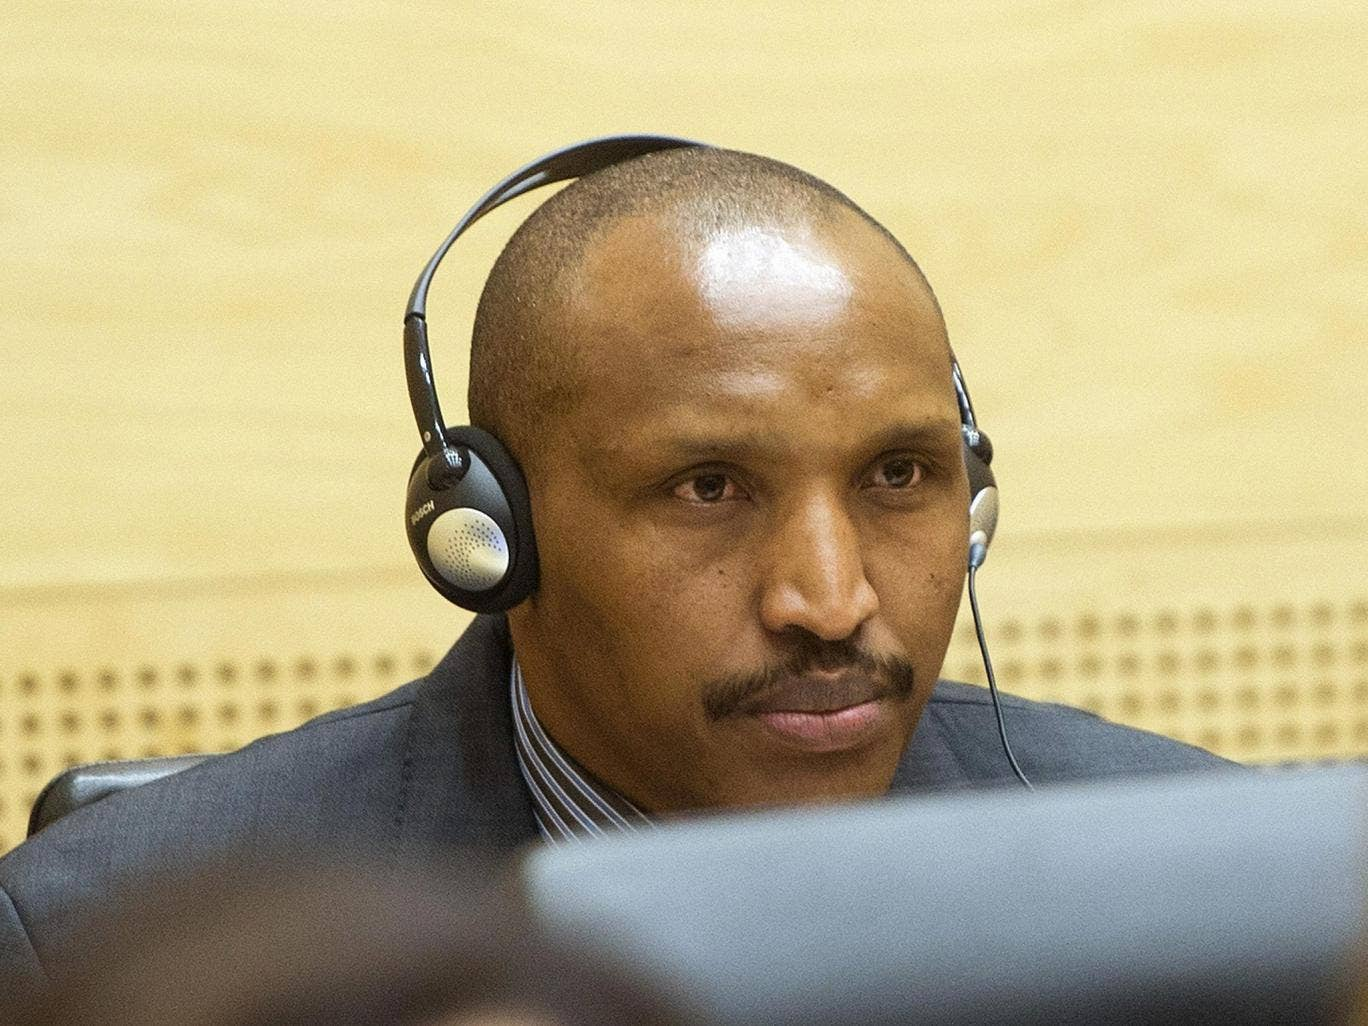 Congolese militia leader Bosco Ntaganda appears at the International Criminal Court charged with war crimes and crimes against humanity in a hearing in The Hague